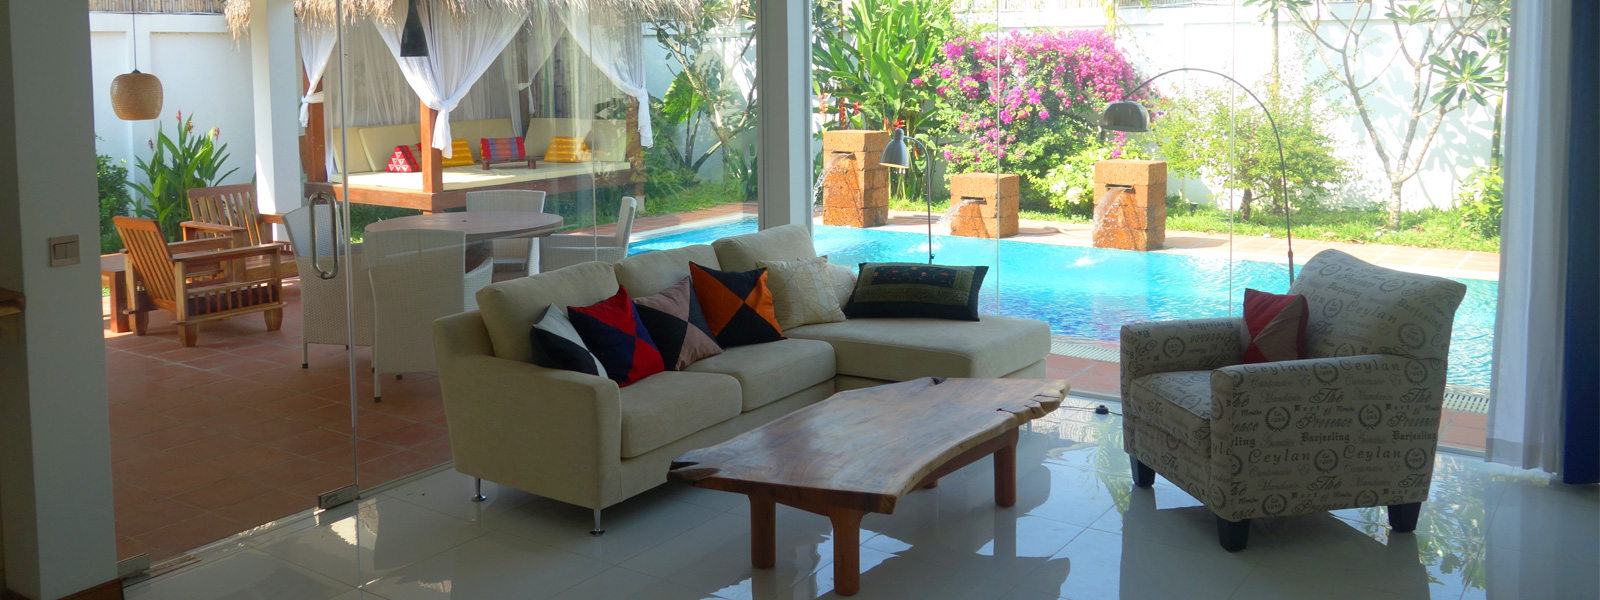 Luxury villa Special Offer Now